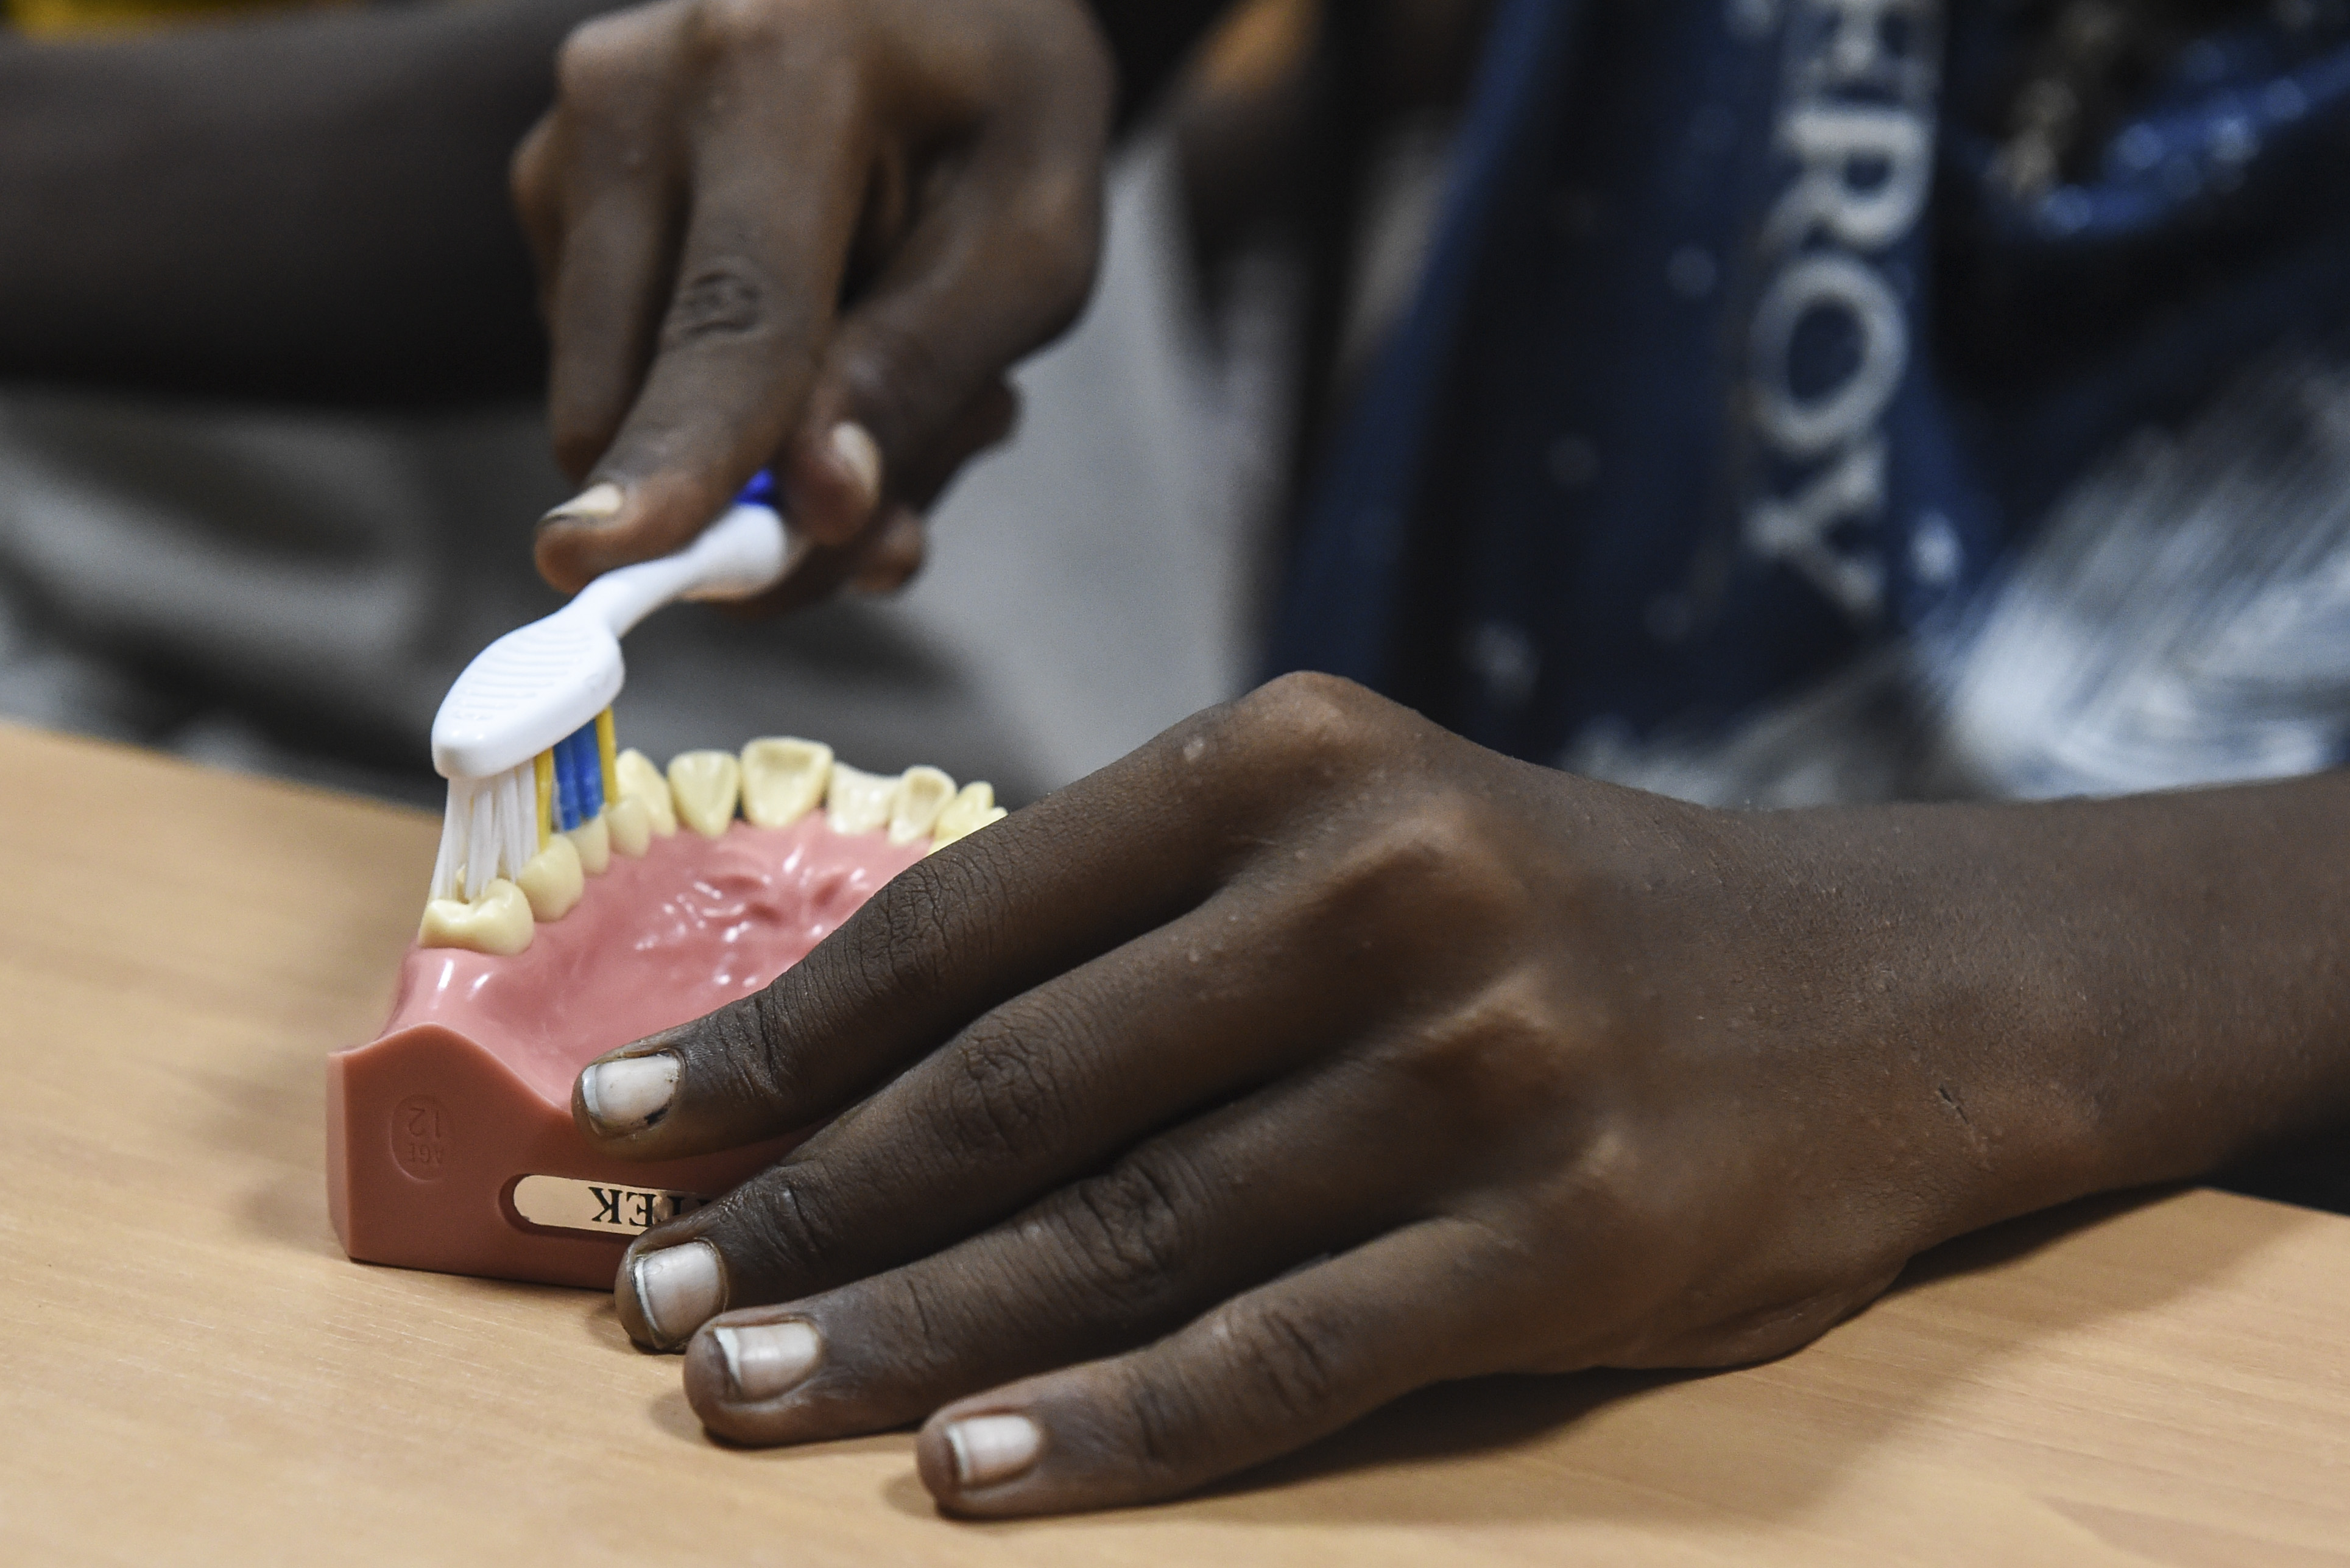 A child uses a dental typodont to practice teeth-brushing techniques during an oral hygiene demonstration in Djibouti City, Djibouti, Aug. 8, 2017. In support of Combined Joint Task Force-Horn of Africa's efforts to promote regional security, stability and prosperity, the 443rd Civil Affairs Battalion functional specialty team conducted multiple oral hygiene instruction classes for approximately 60 children from the local area. (U.S. Air Force photo by Staff Sgt. Eboni Prince)